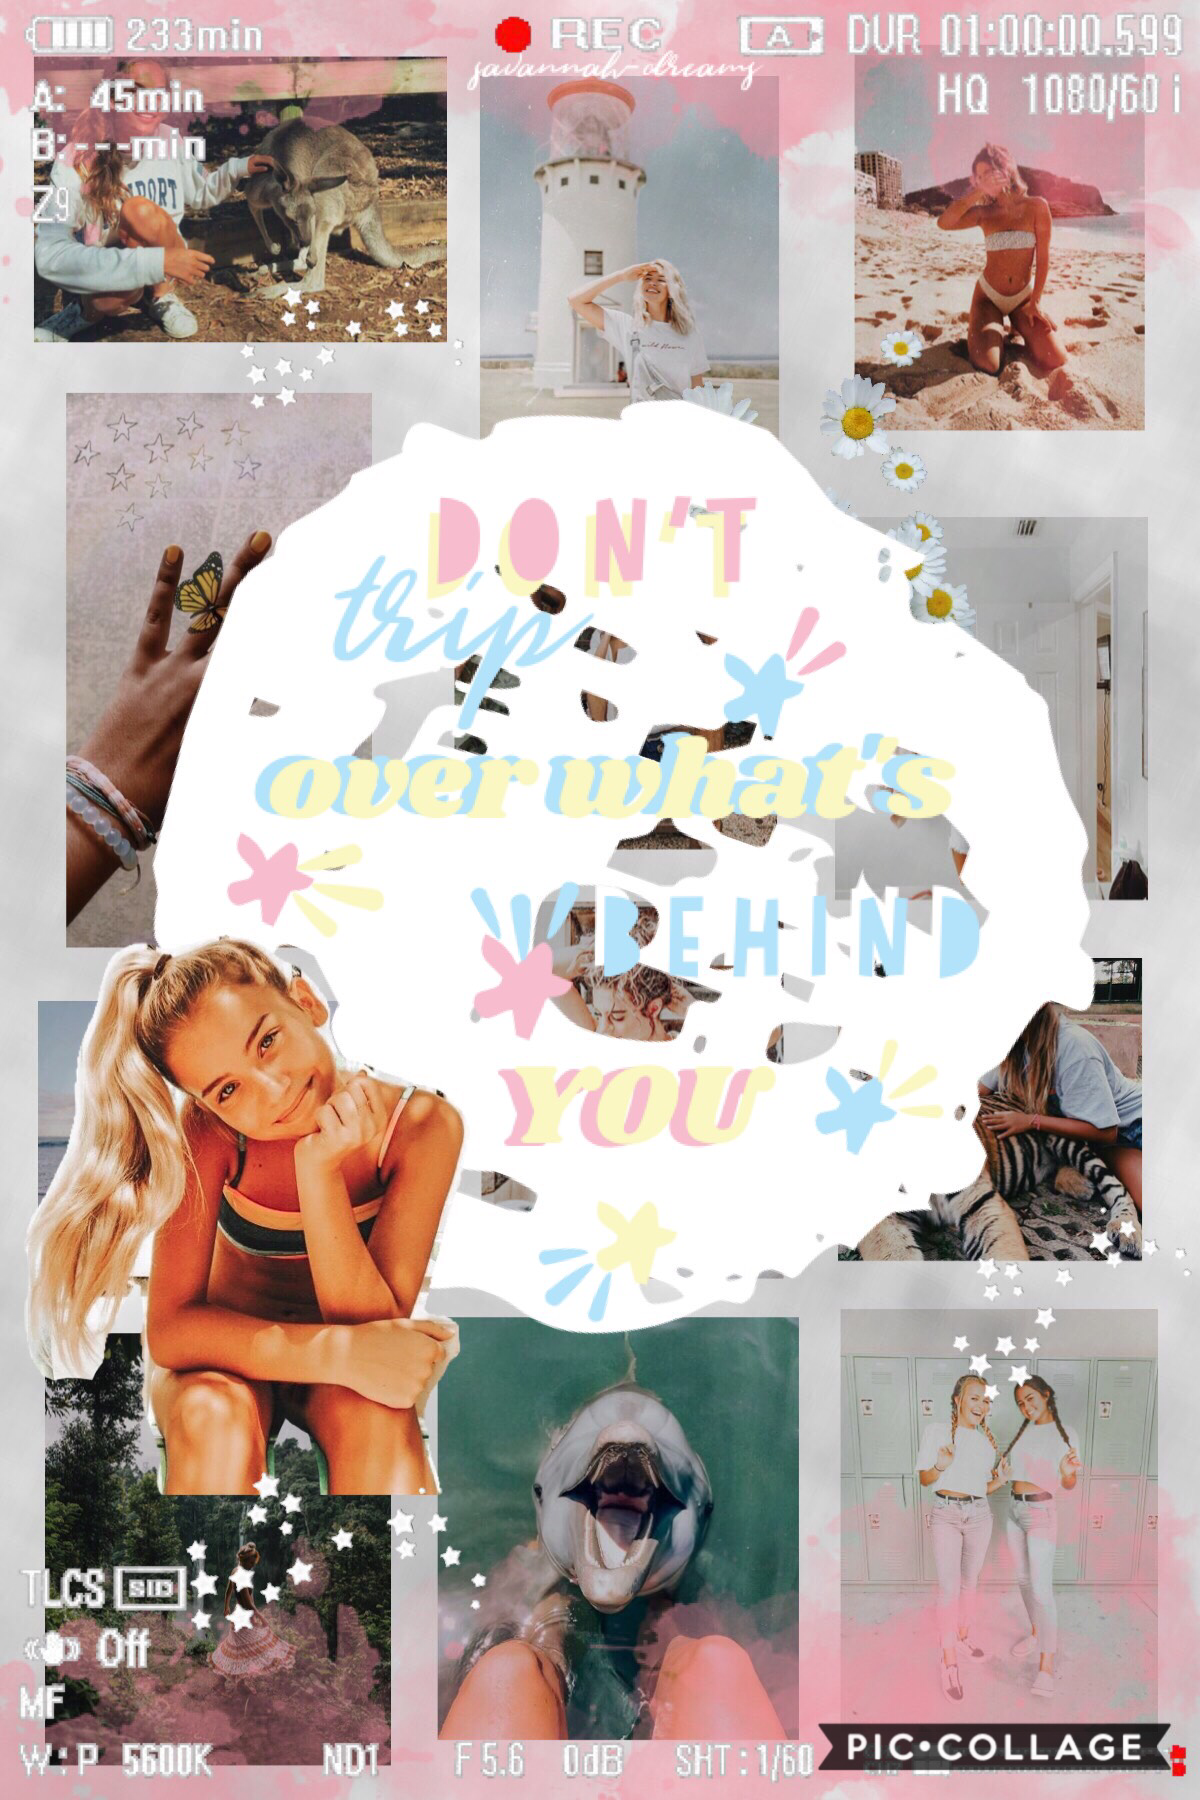 yeee 🌿🧚🏼♀️ something a lil' bit different today 💫 shoutout to @a_rose_garden 🌸🍃 y'all what should i do on my new extras acc?? (@floralist hehe go check it out!) ✨ comment suggestions!!